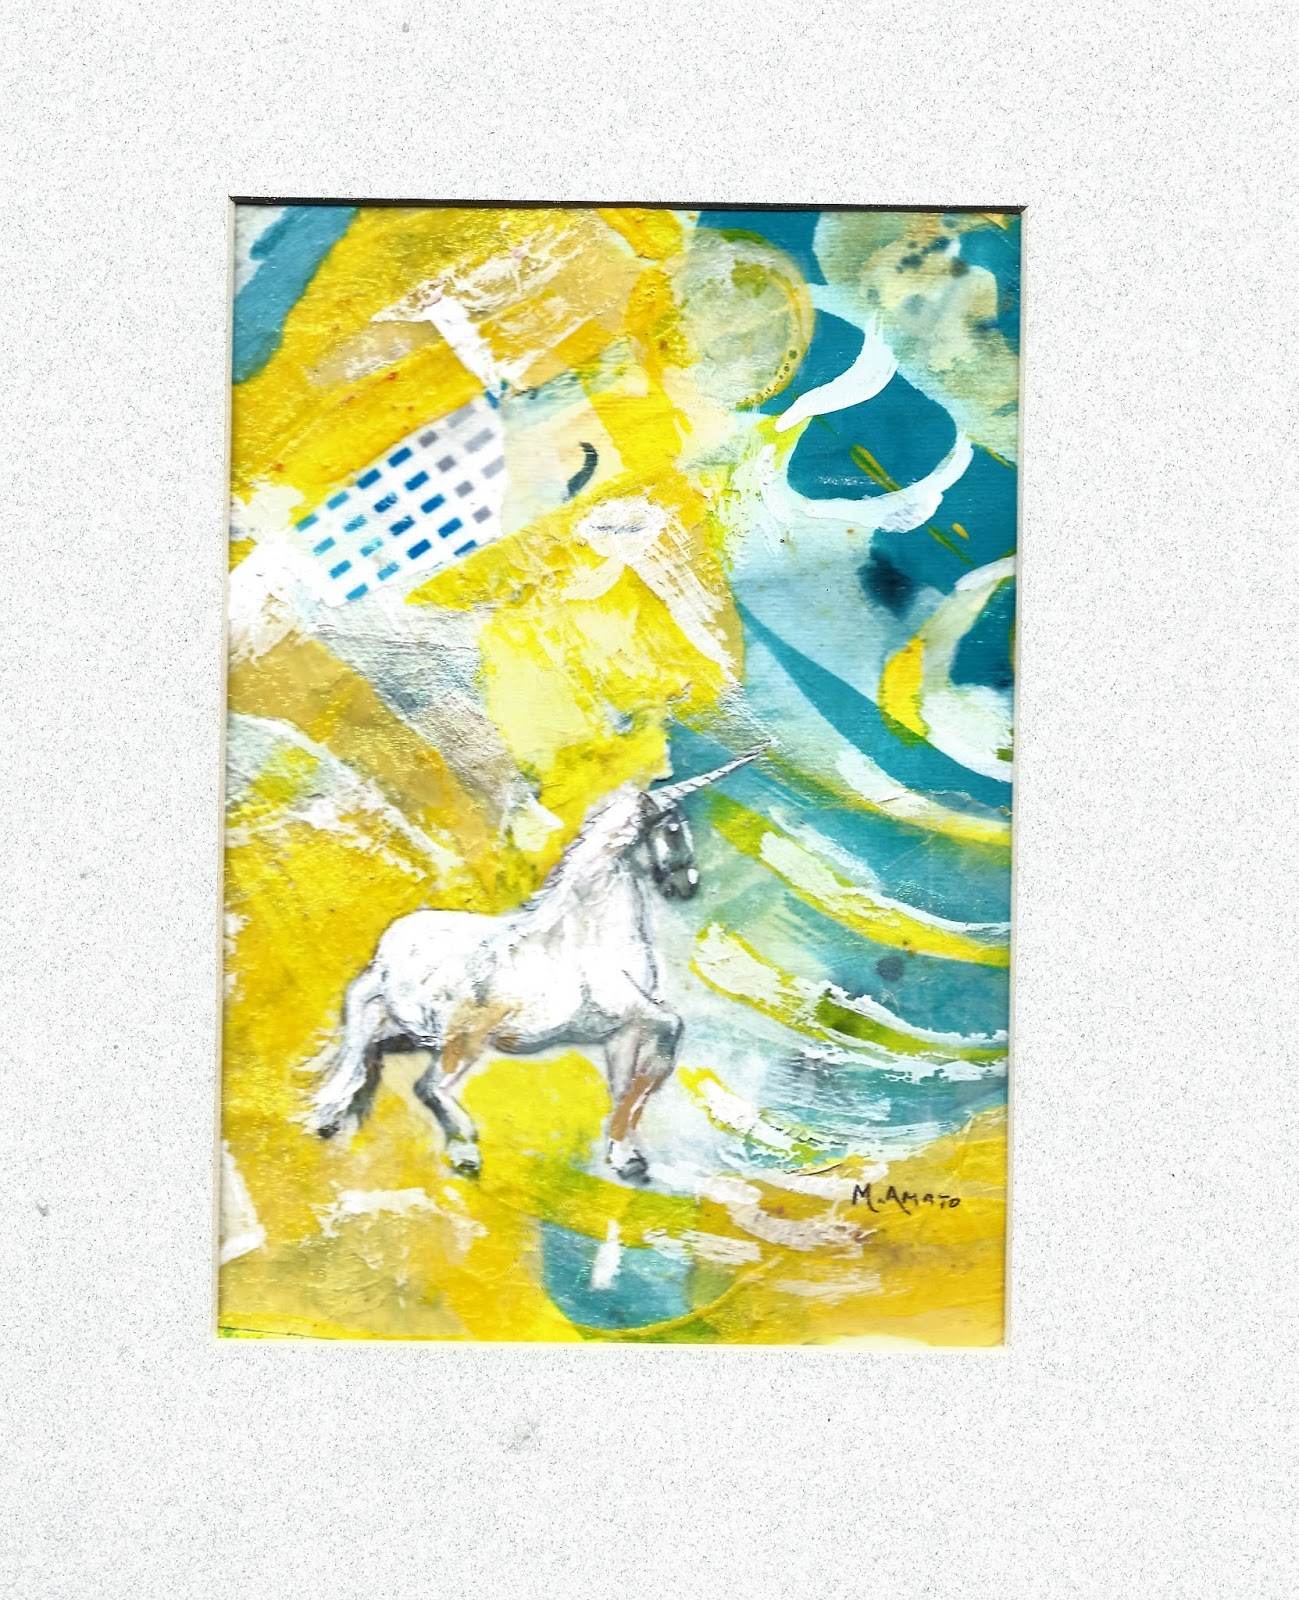 Most Inspiring   Wallpaper Horse Collage - Scan_20150806%2B%25282%2529  Perfect Image Reference_182071.jpg